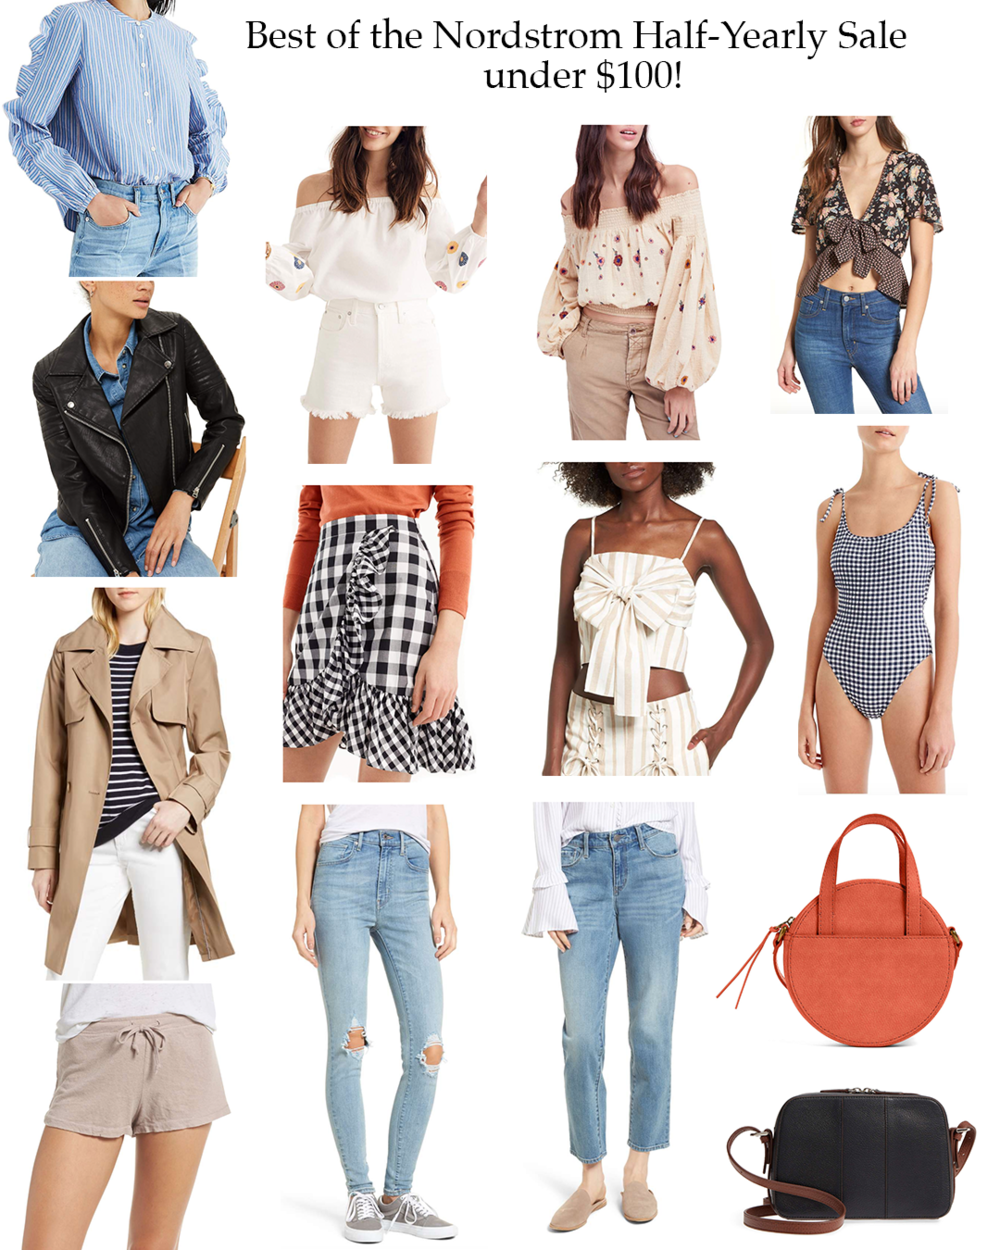 From left to right.  Blue Striped Top  |  White Off Shoulder  |  Balloon Sleeves  |  Tie Top  |  Moto Jacket  |  Gingham Skirt  |  Tie Top  |  Gingham One-Piece  |  Trench Coat  |  Levi's Jeans  |  Boyfriend Jeans  |  Madewell Bag  |  Lounge Shorts  |  Camera Bag